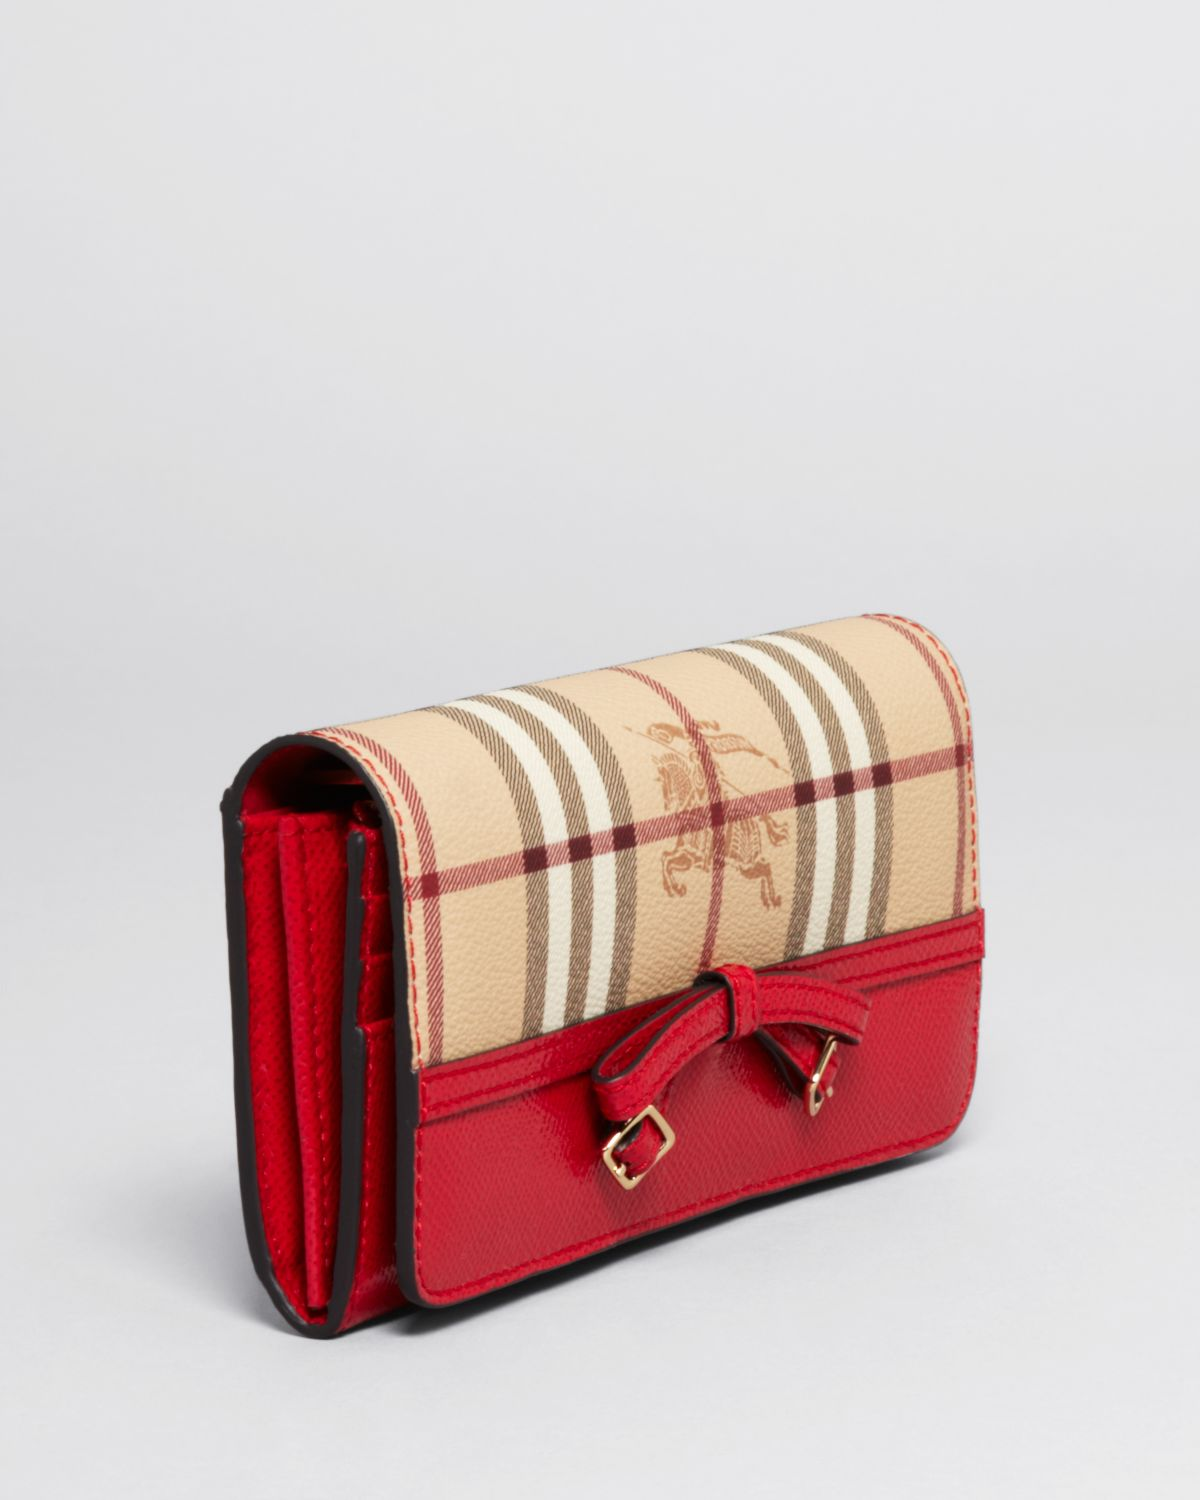 Burberry Wallet Red